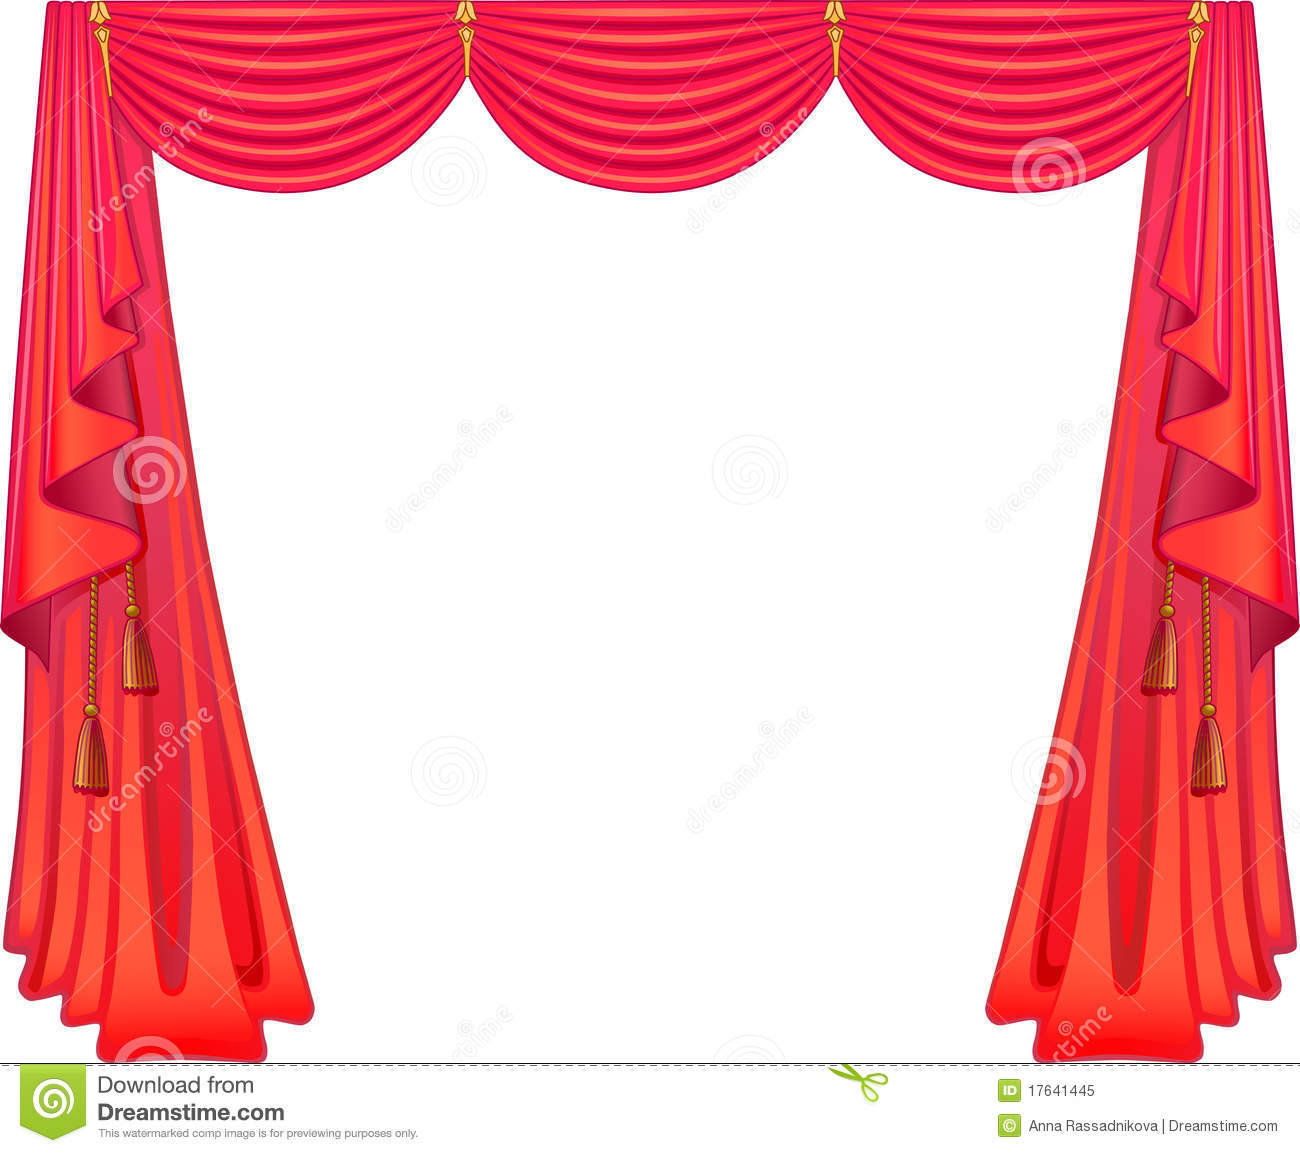 Red curtains isolated on white background.